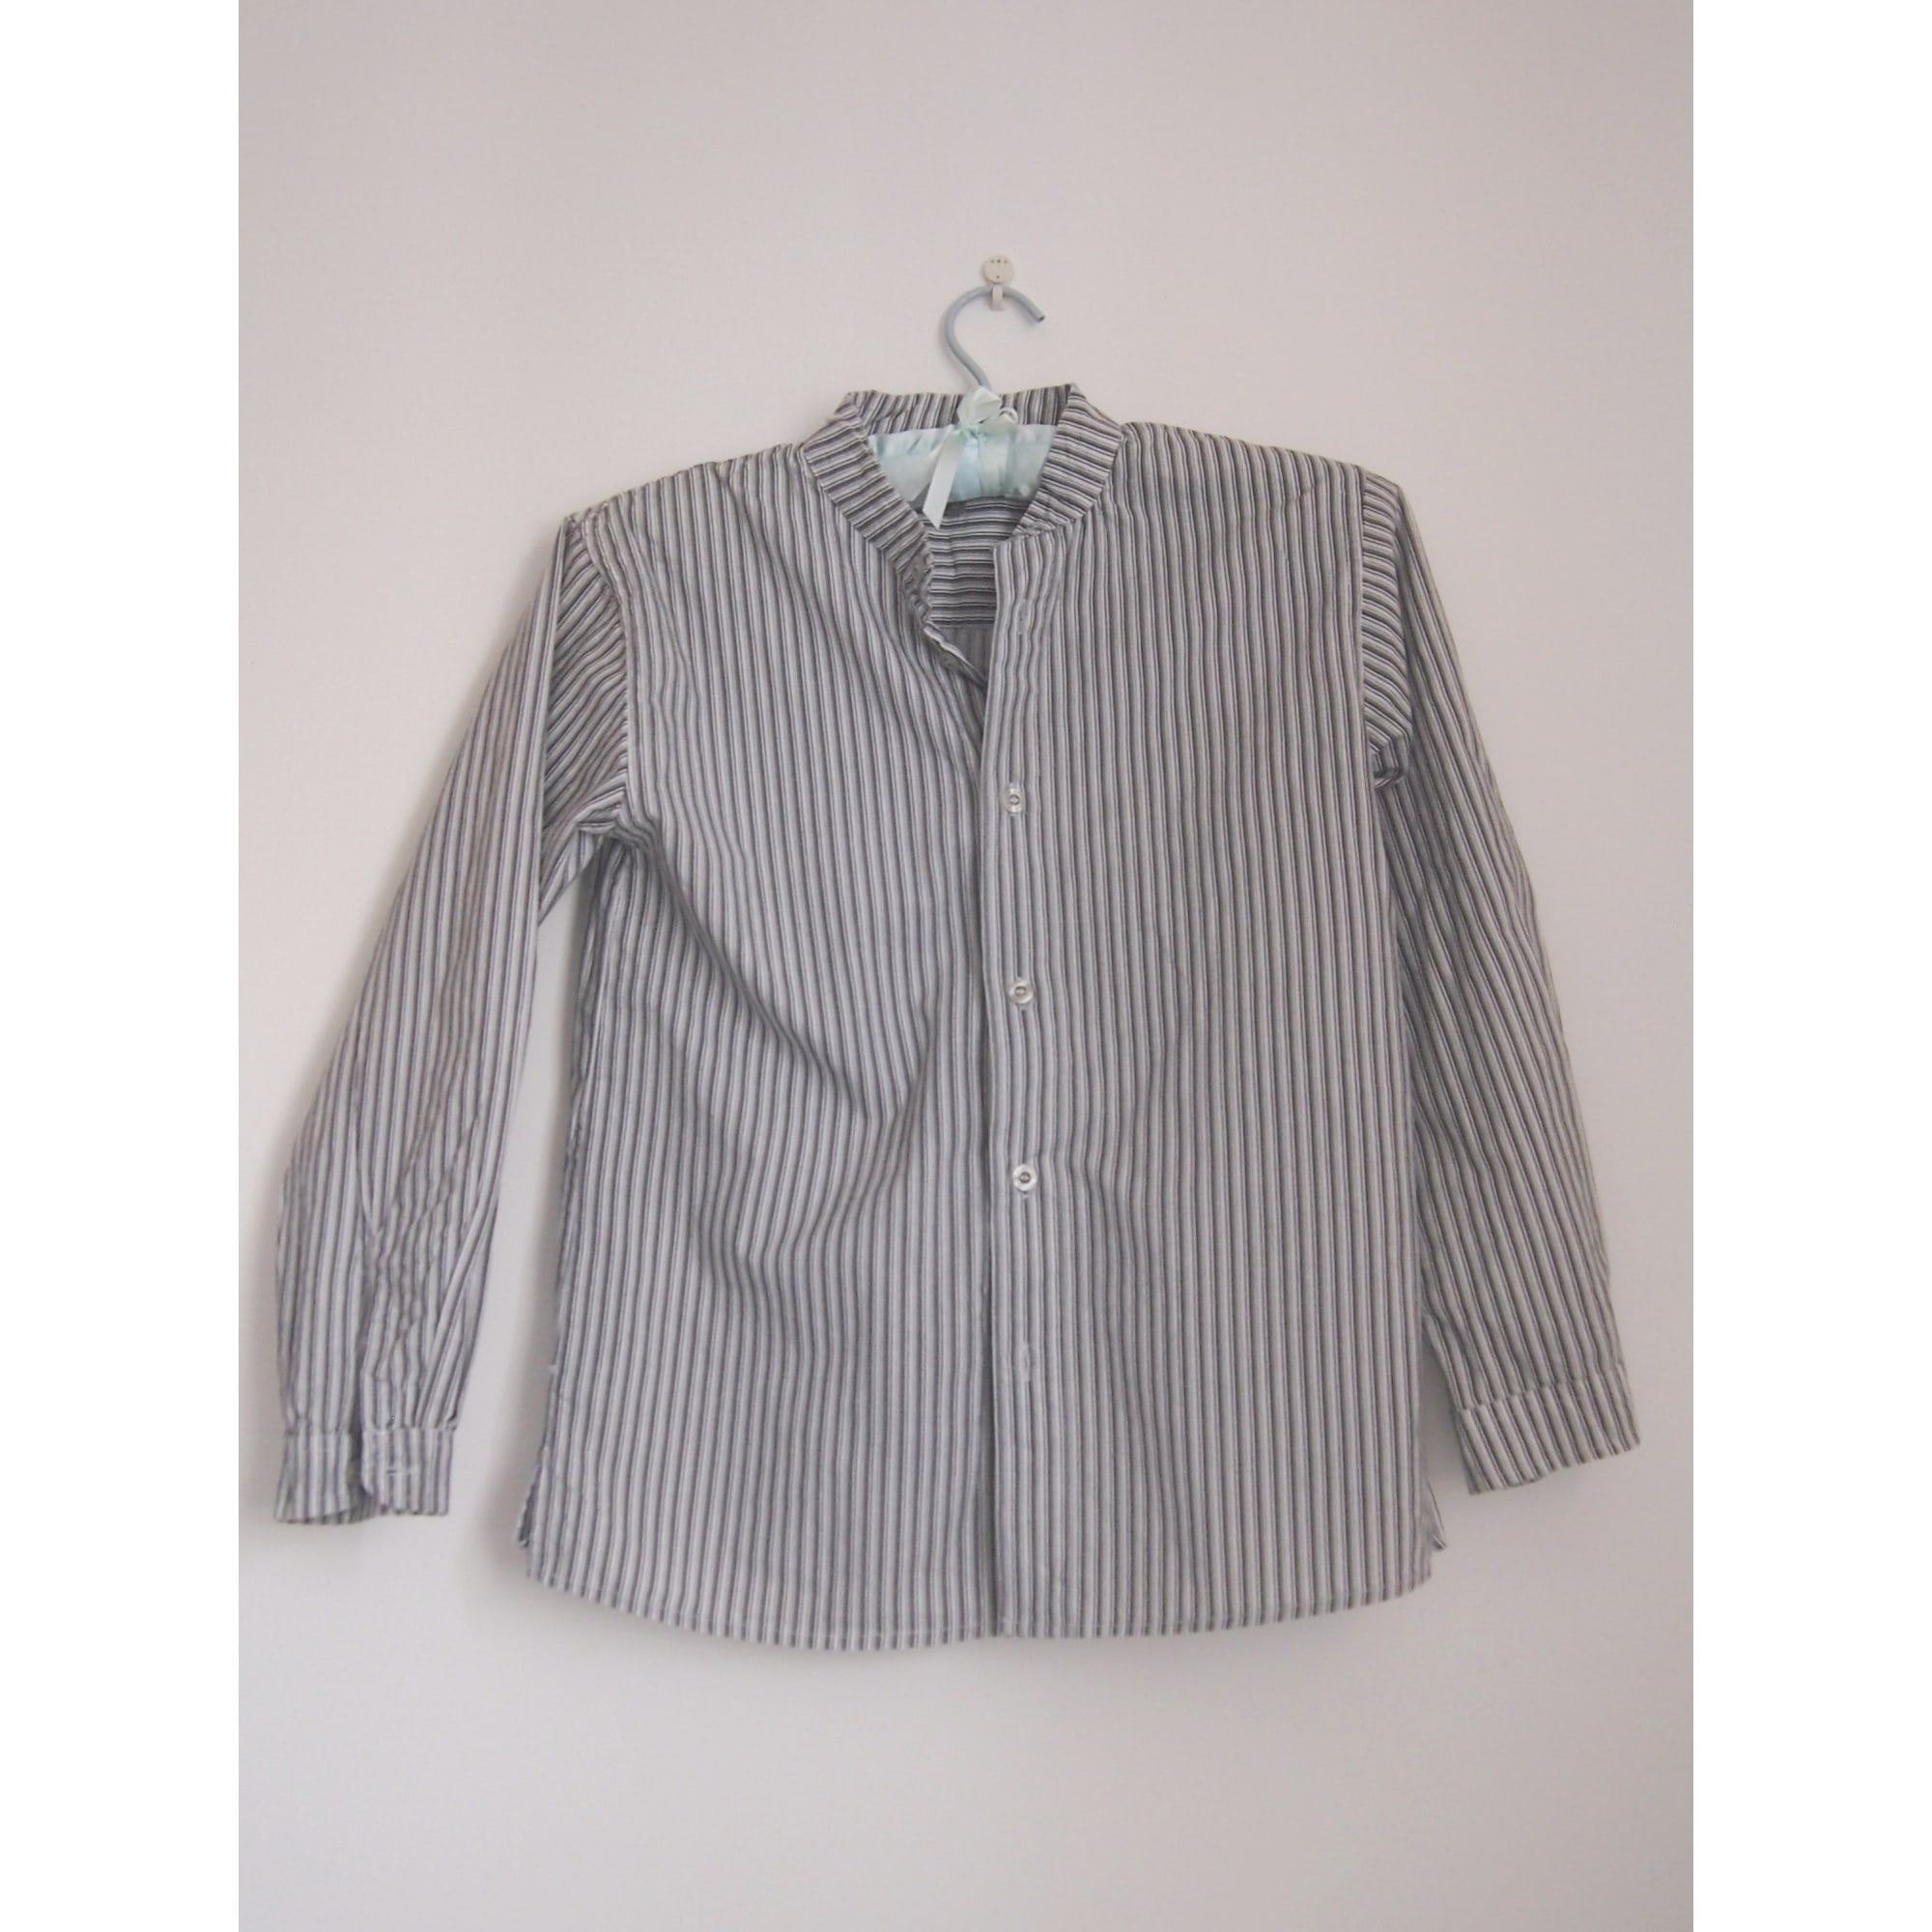 Chemise IN EXTENSO RAYE BLANC ET GRIS